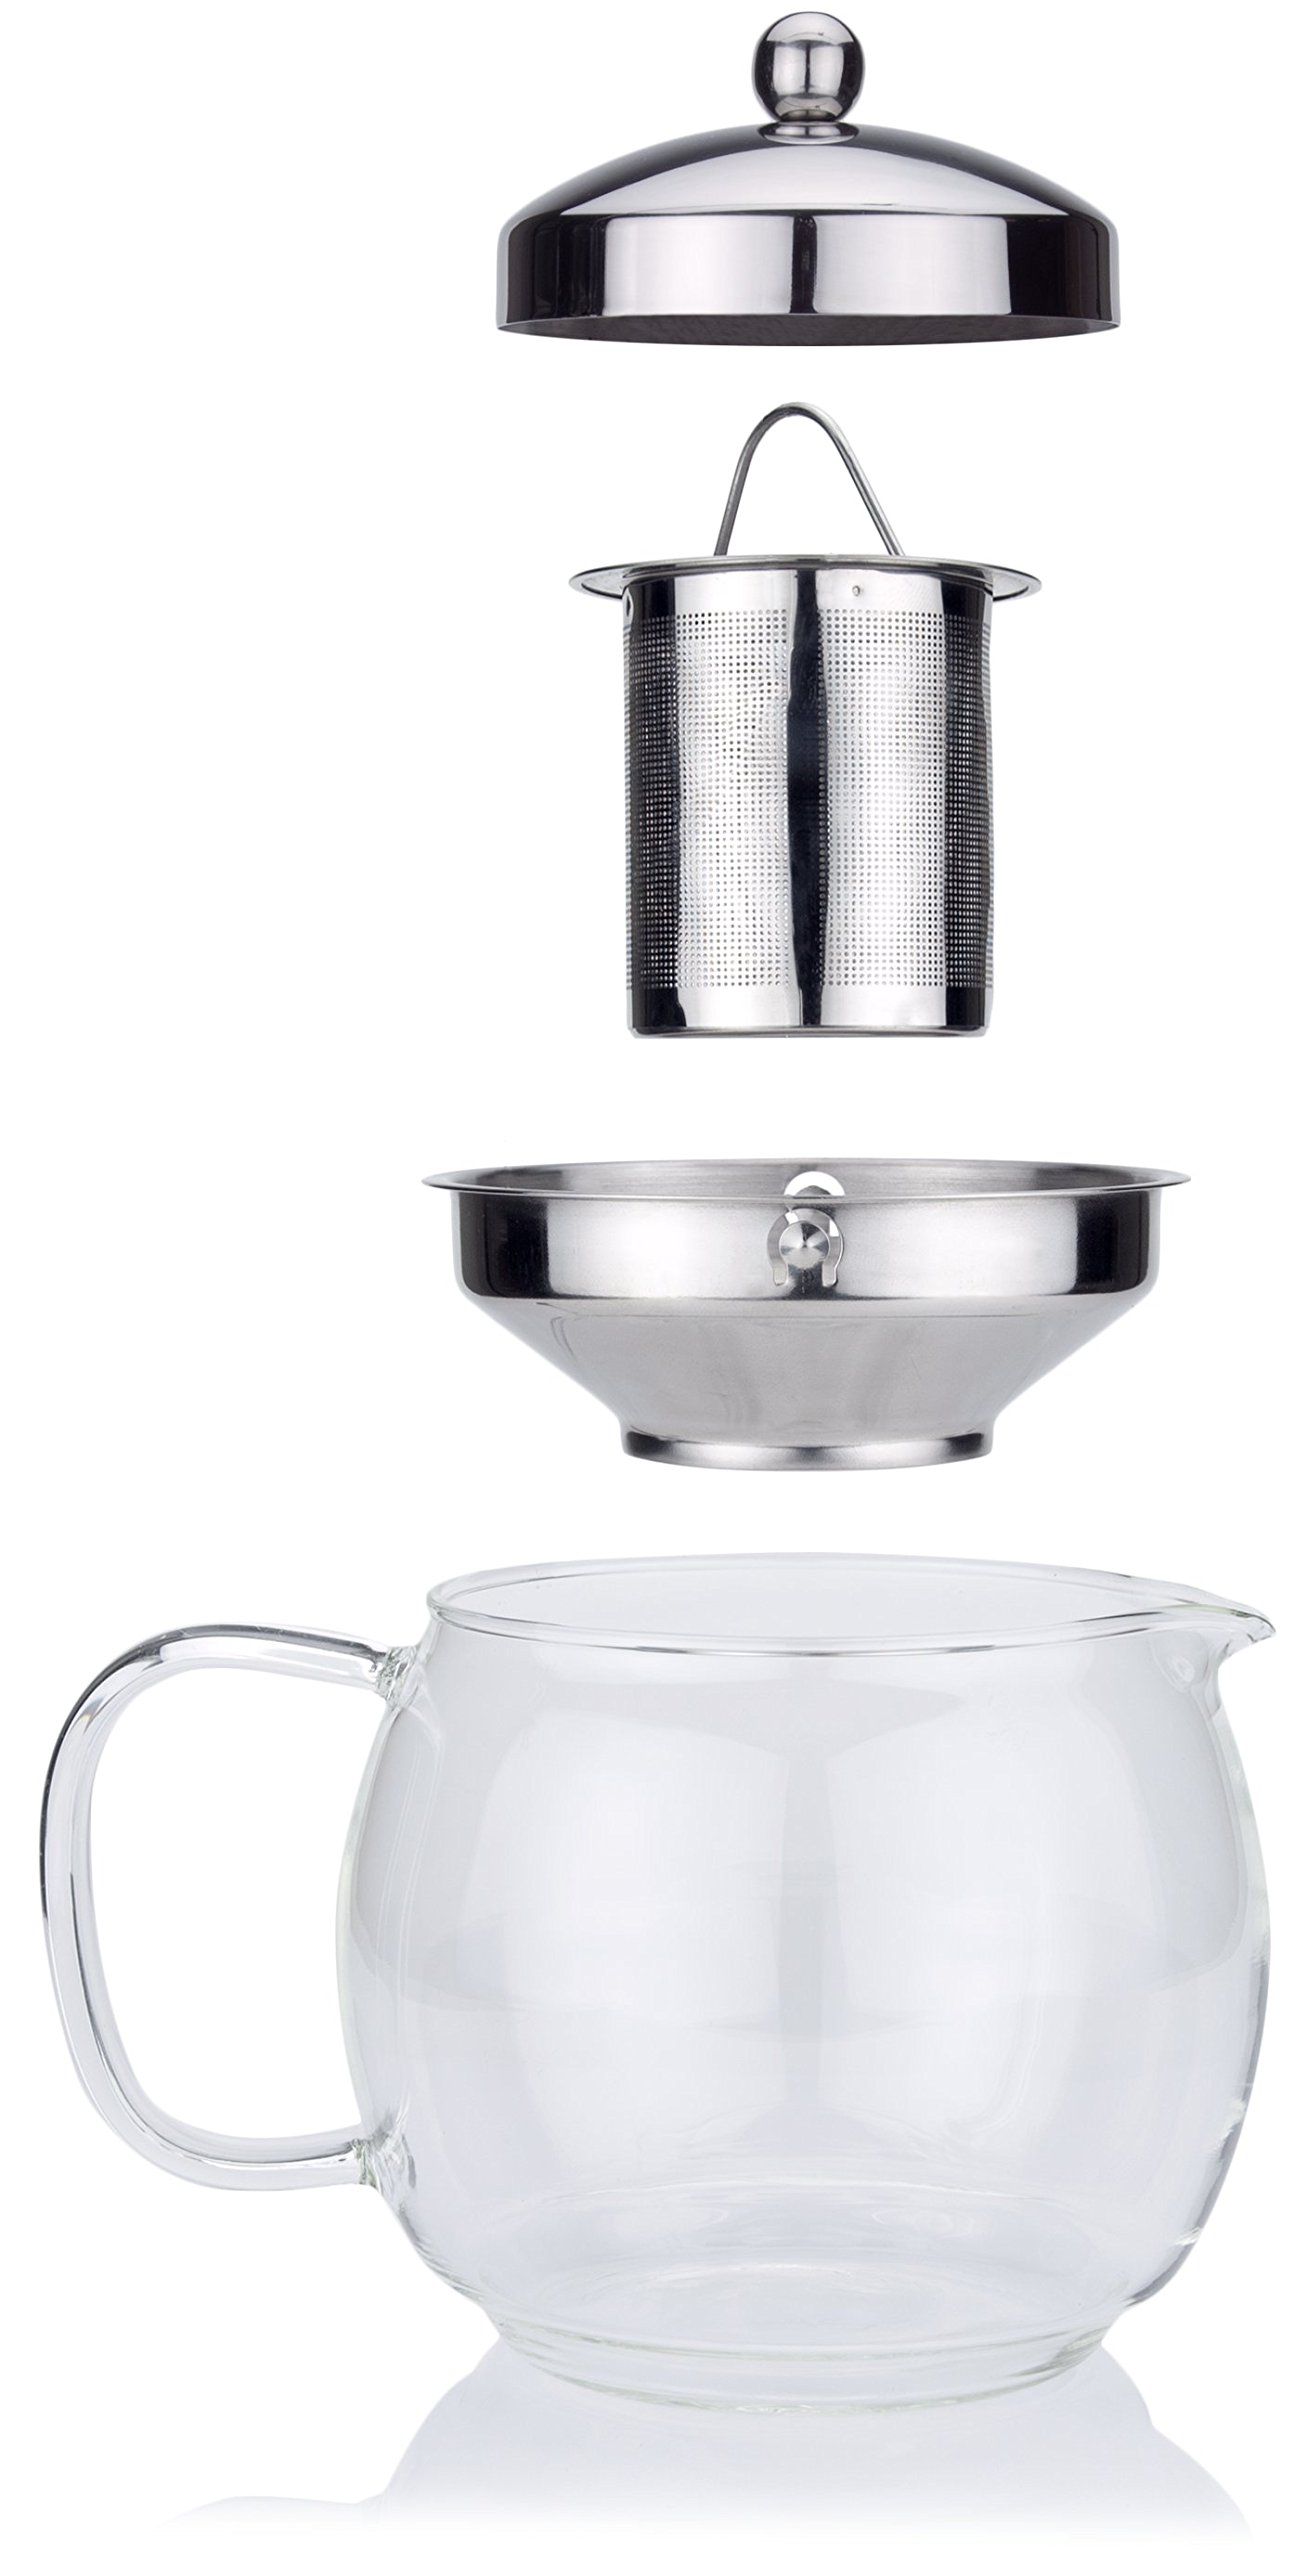 Glass Teapot with Infuser for Blooming and Loose Leaf Tea Pot by Cozyna | Holds 5-6 Cups | Includes Recipe Book by Cozyna (Image #3)